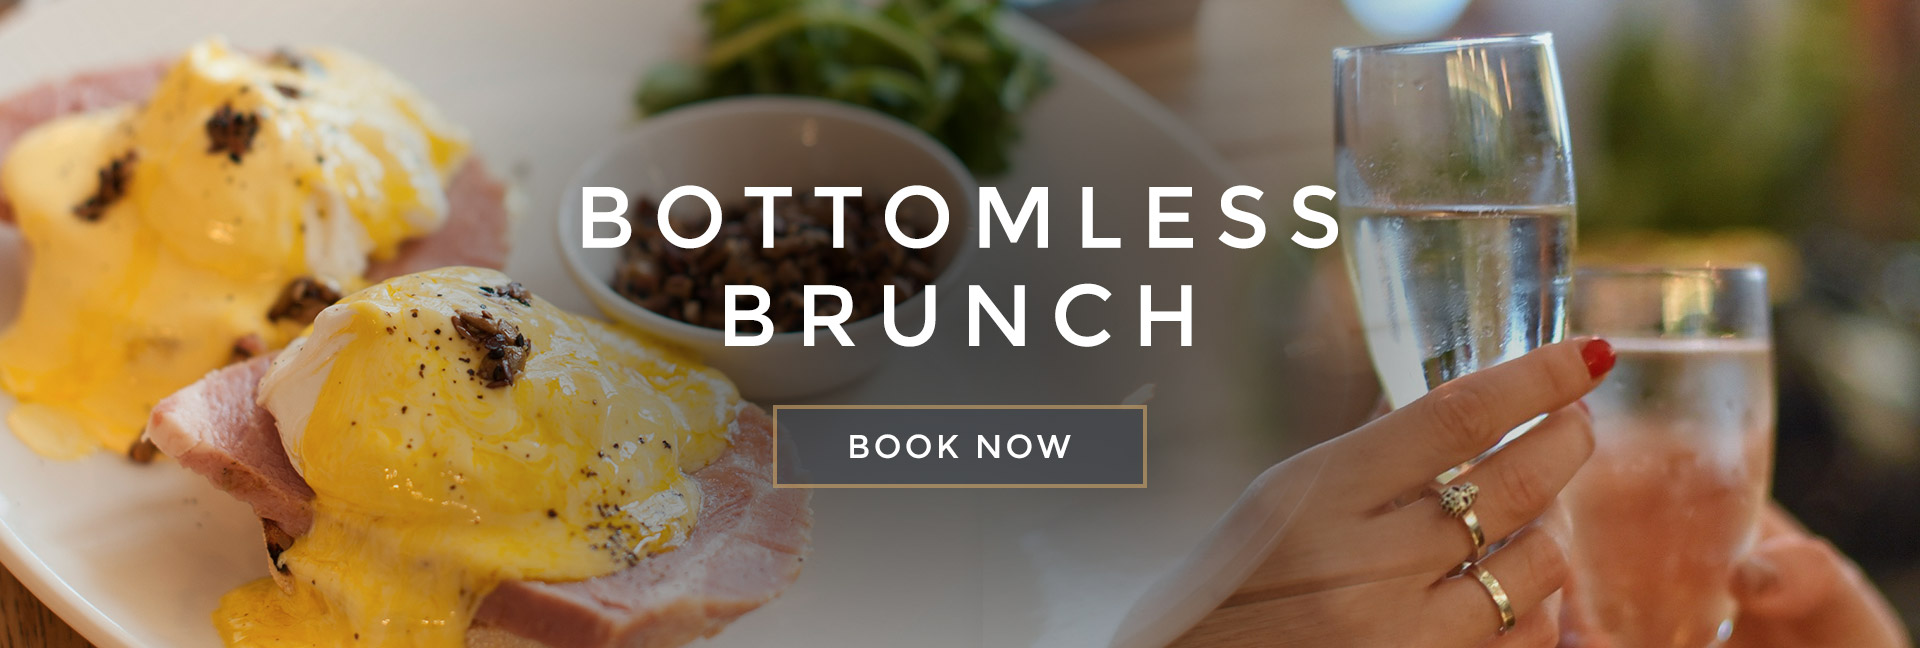 Bottomless Brunch at All Bar One Reading - Book now